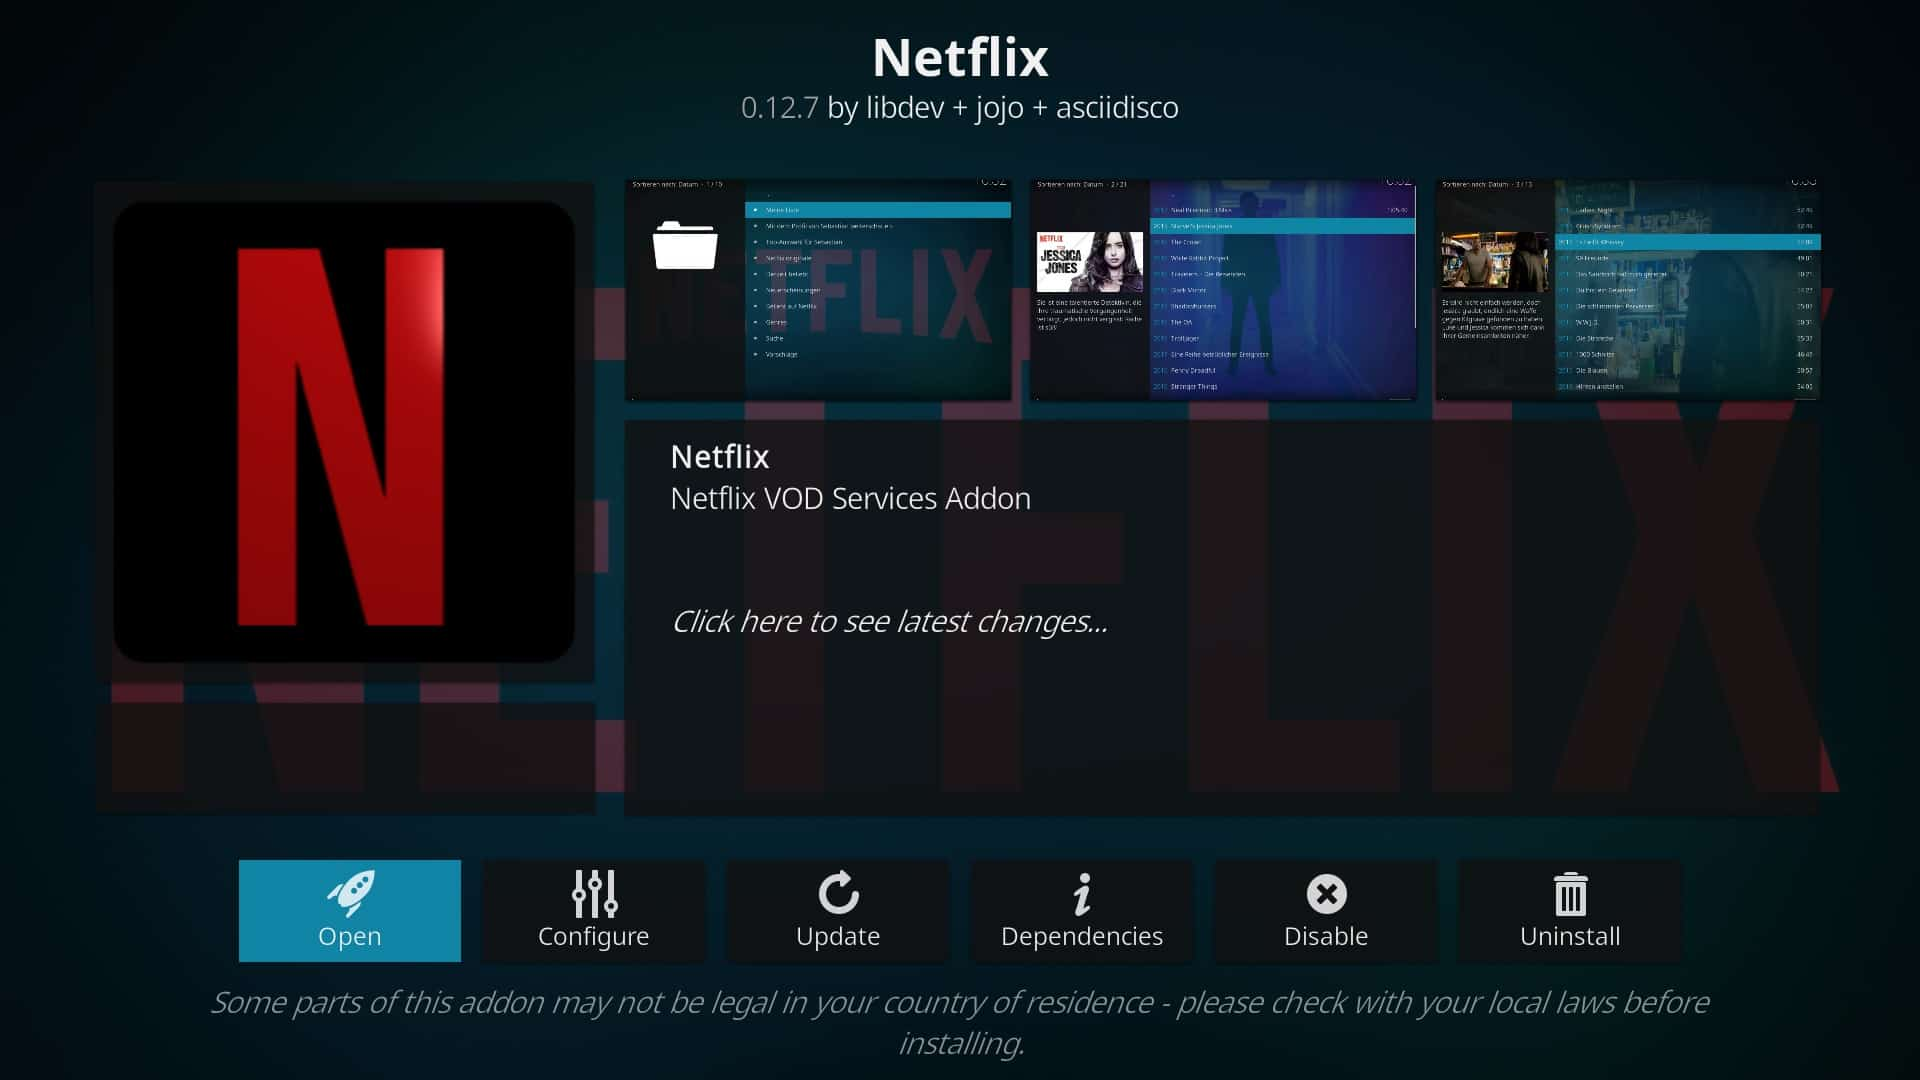 Einrichten Netflix How To Watch Netflix On Kodi 18 Install The Netflix Kodi Addon